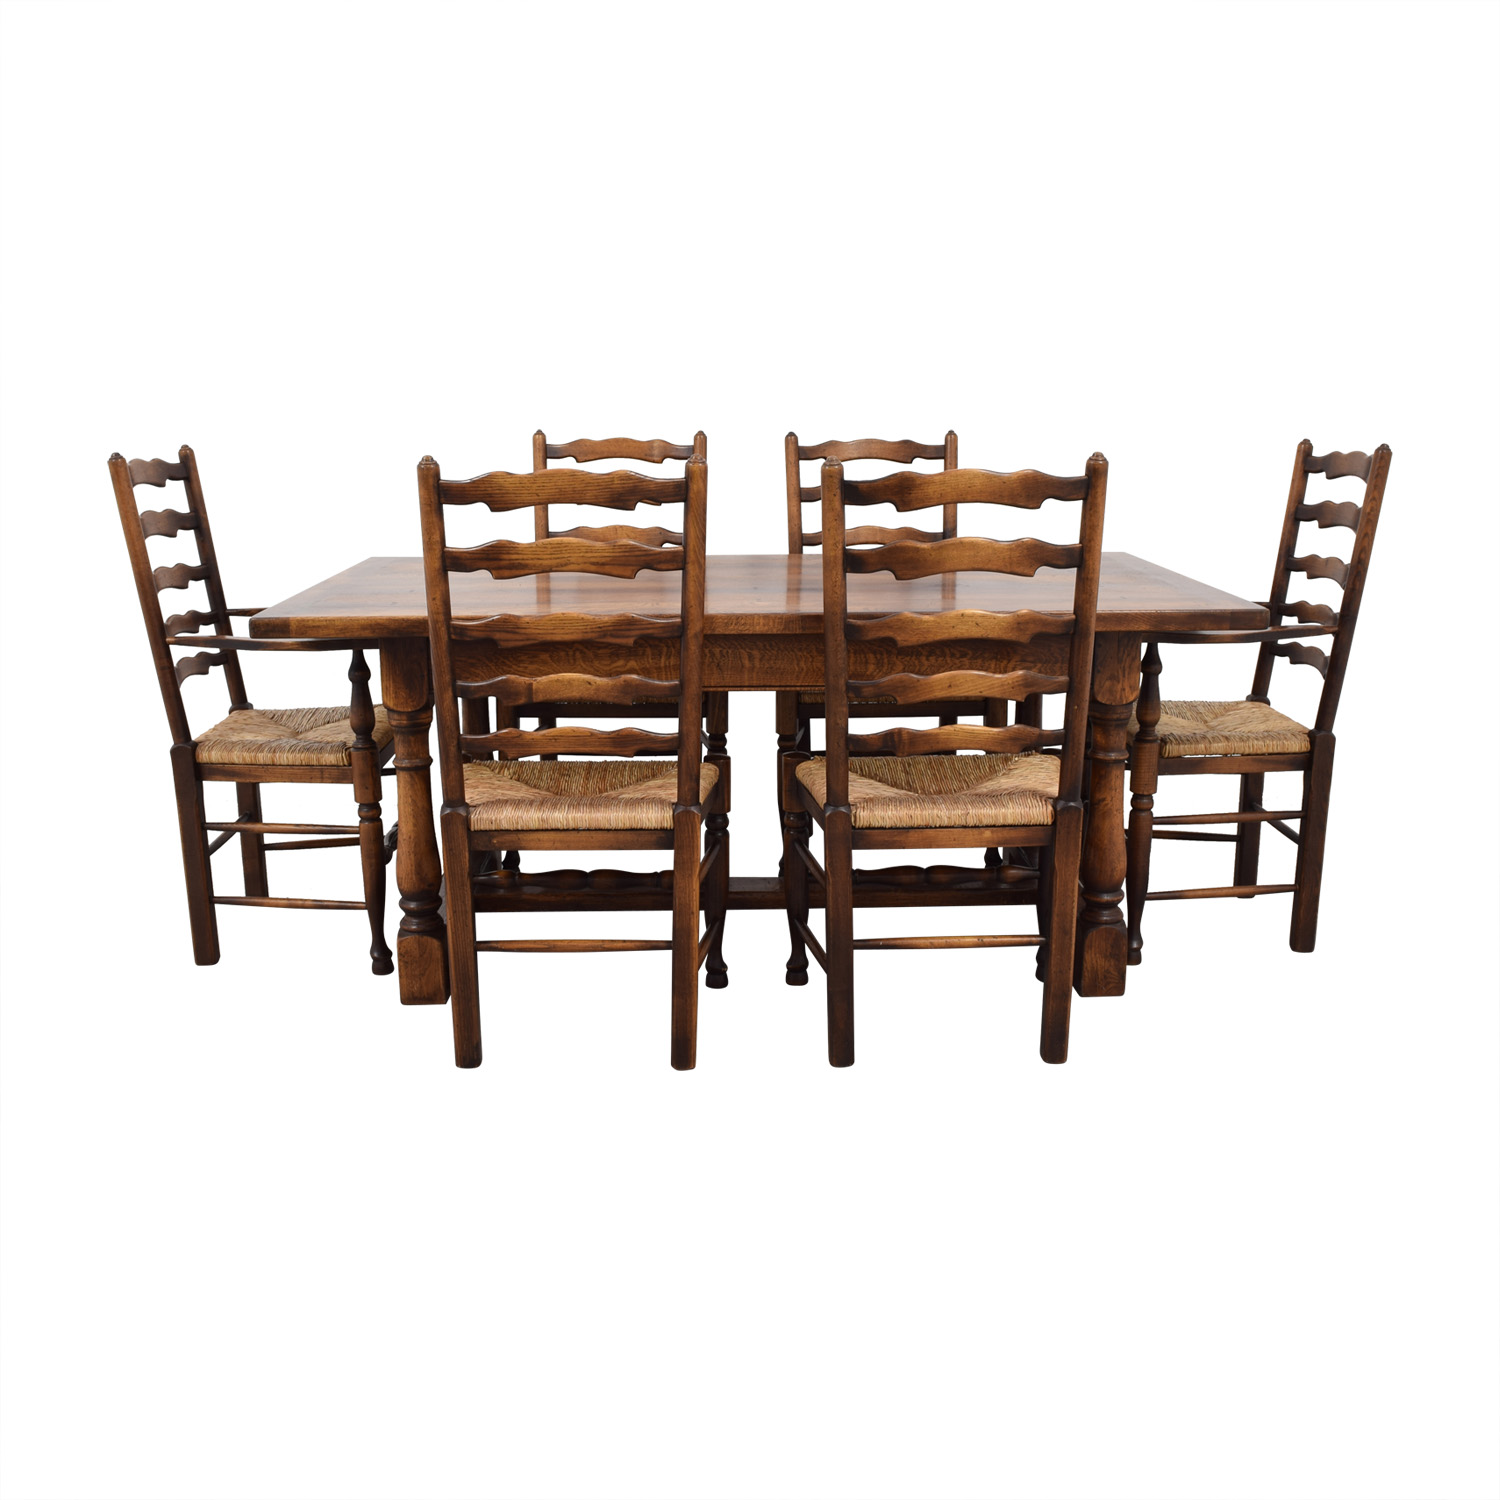 shop Fauld Refectory Wood Dining Set Fauld